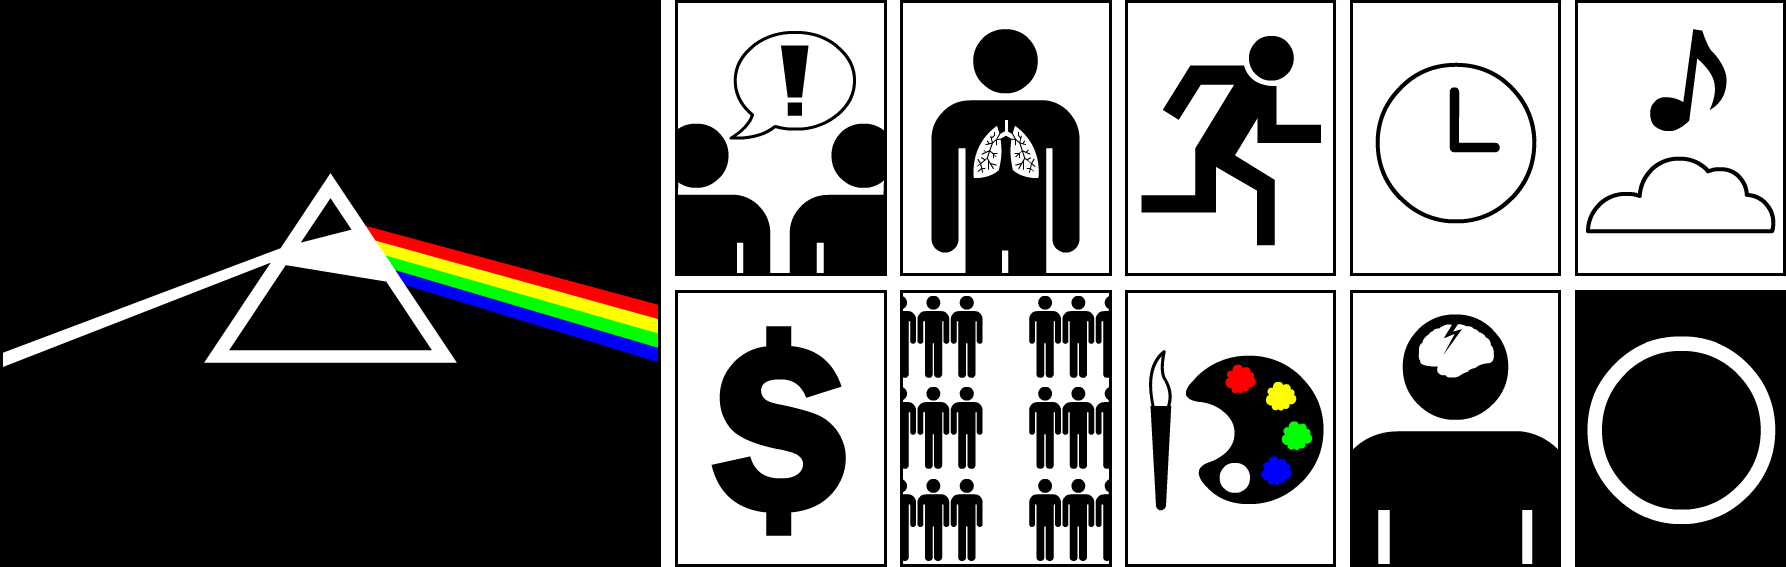 Dark Side Of The Moon In Signs By Kkslayer On Deviantart